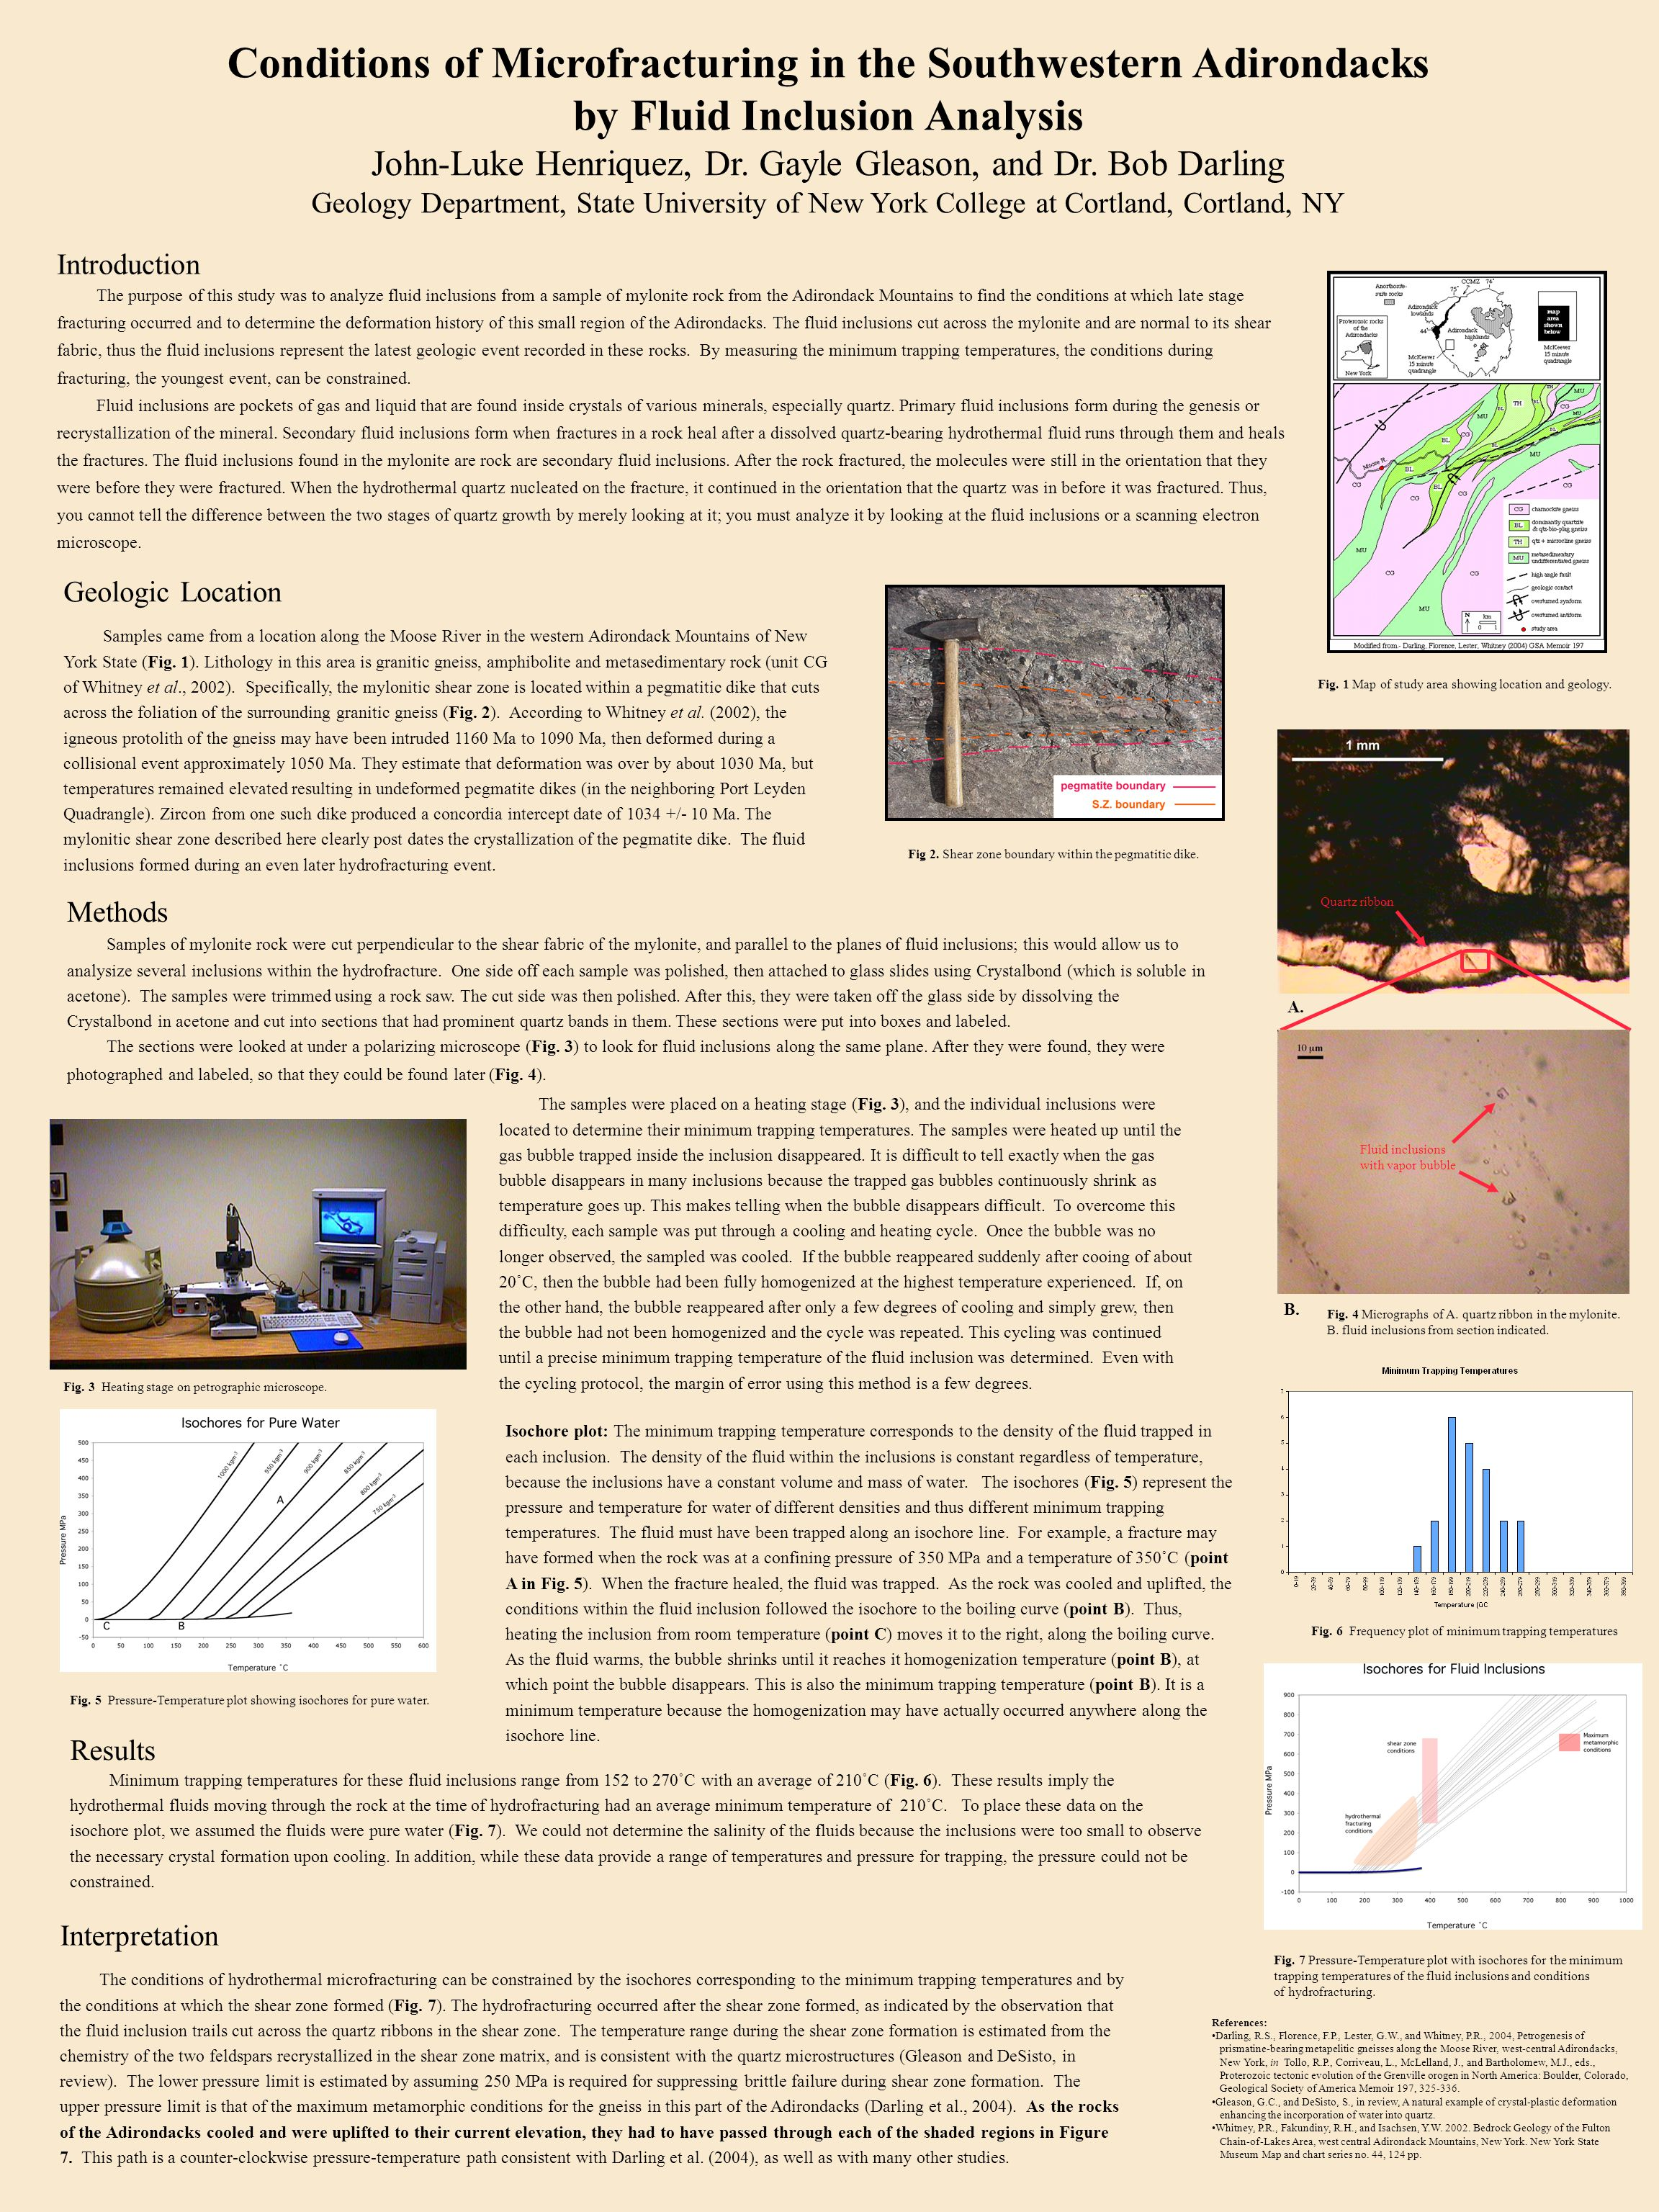 Conditions of Microfracturing in the Southwestern Adirondacks by Fluid Inclusion Analysis John-Luke Henriquez, Dr.